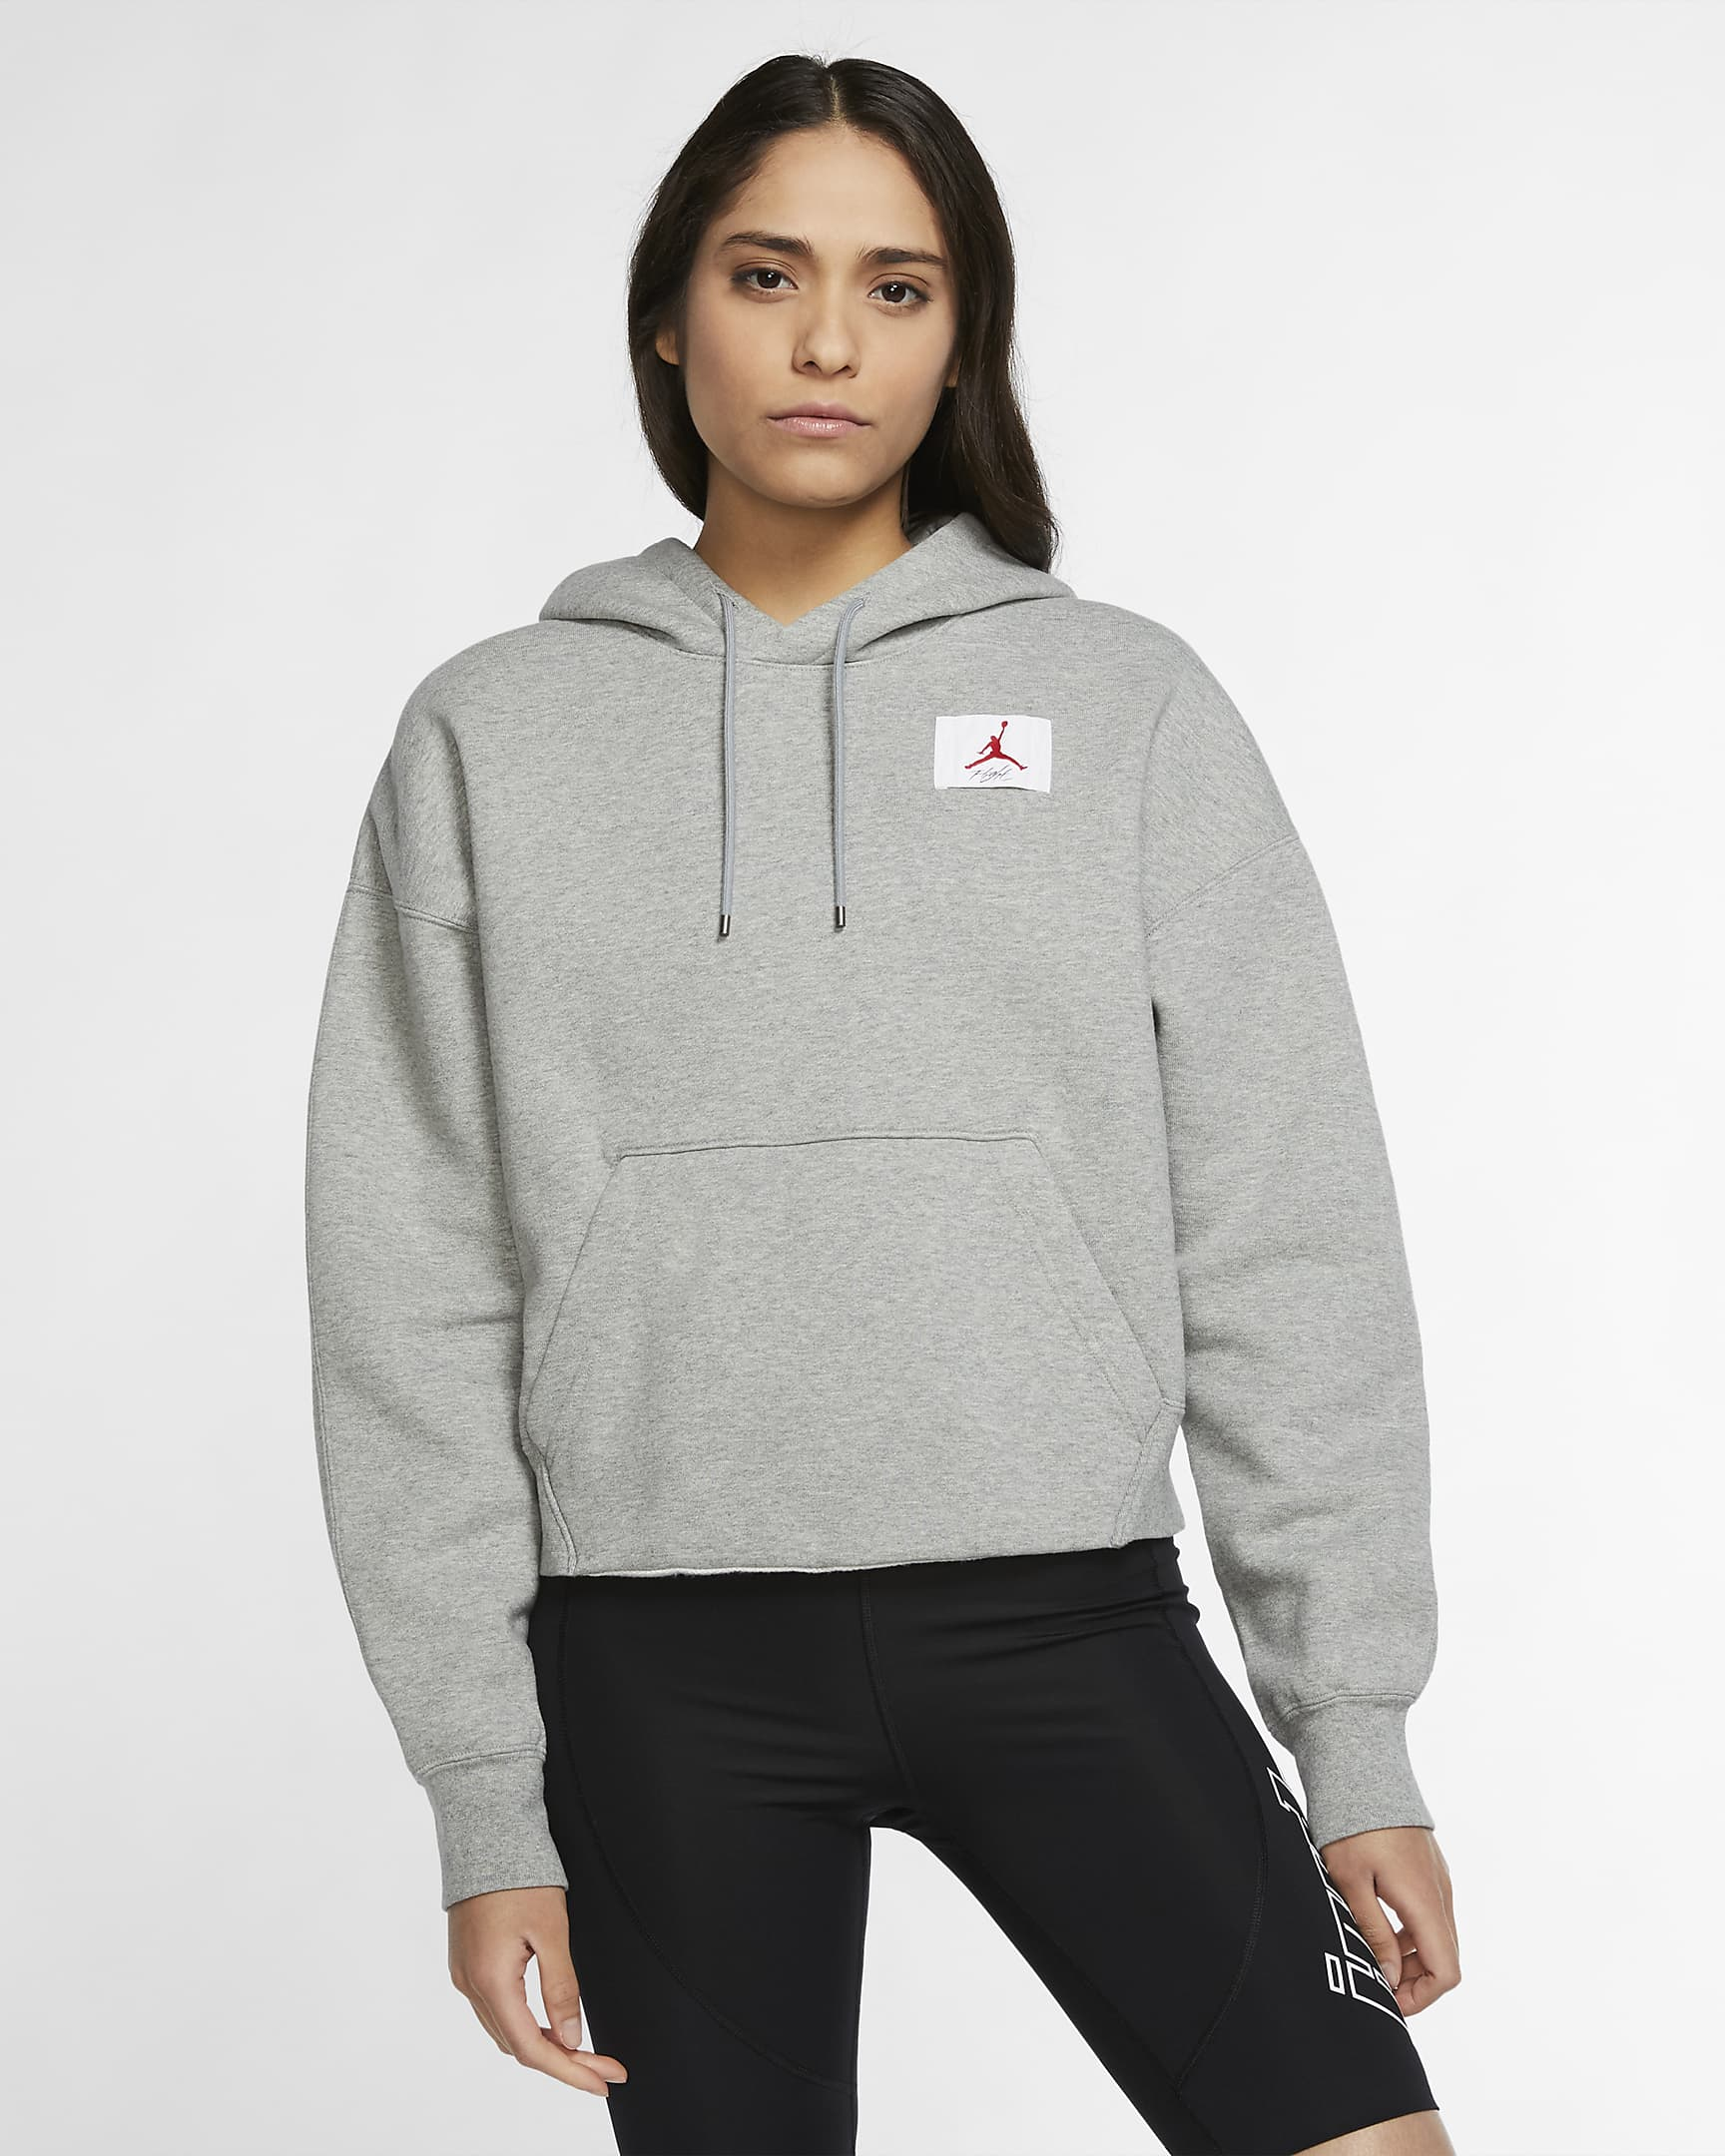 jordan-flight-womens-fleece-pullover-hoodie-M8SP84-2